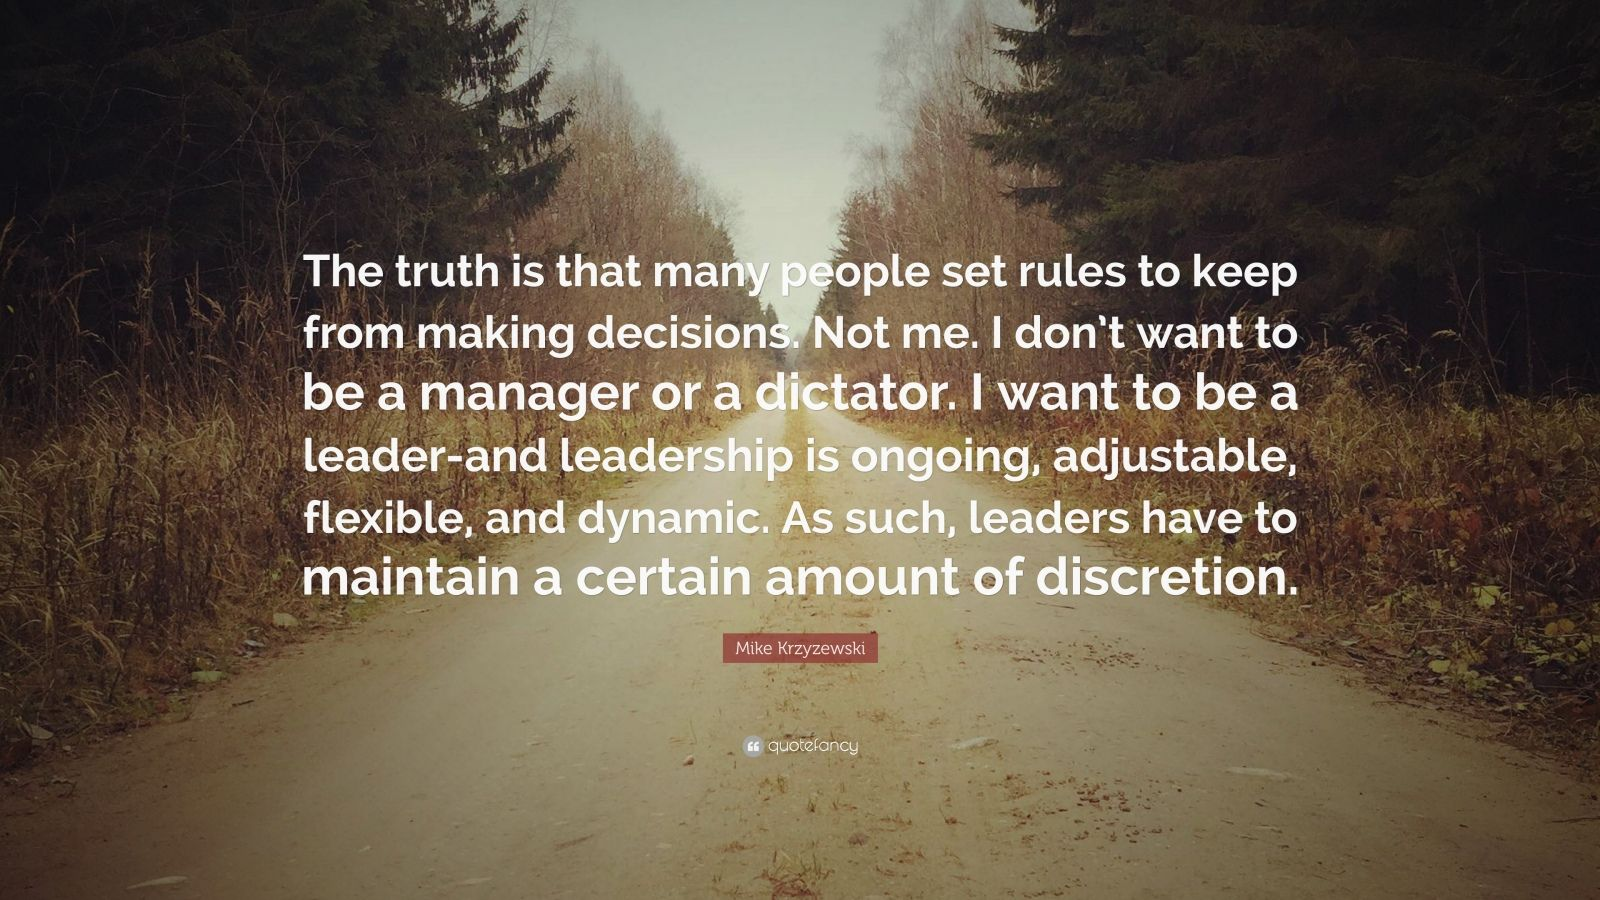 """Mike Krzyzewski Quote: """"The truth is that many people set rules to keep from making decisions. Not me. I don't want to be a manager or a dictator. I want to be a leader-and leadership is ongoing, adjustable, flexible, and dynamic. As such, leaders have to maintain a certain amount of discretion."""""""